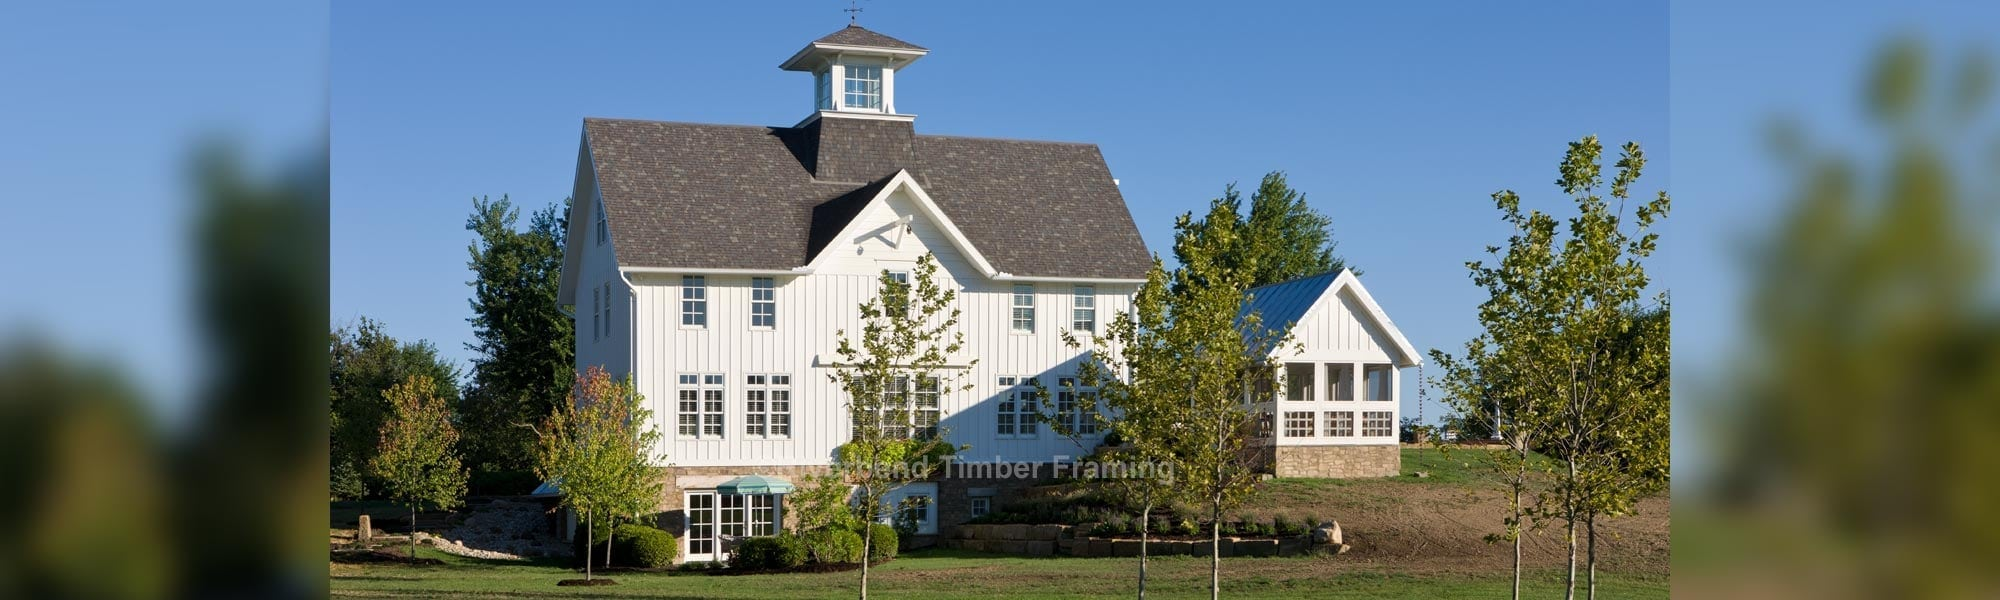 Barn Style Homes | Timber Barn Homes | by Riverbend on mountain style home plans, barn shaped house plans, l-shaped range home plans, southern style home plans, central atrium home plans, 5 bed home plans, warehouse home plans, one-bedroom cottage home plans, three story home plans, v-shaped home plans, barn style home plans, garrison style home plans, small gambrel home plans, 24x40 home plans, multi family home plans, courtyard pool home plans, gabriel style home plans, new country home plans, antique style home plans, shed roof style home plans,